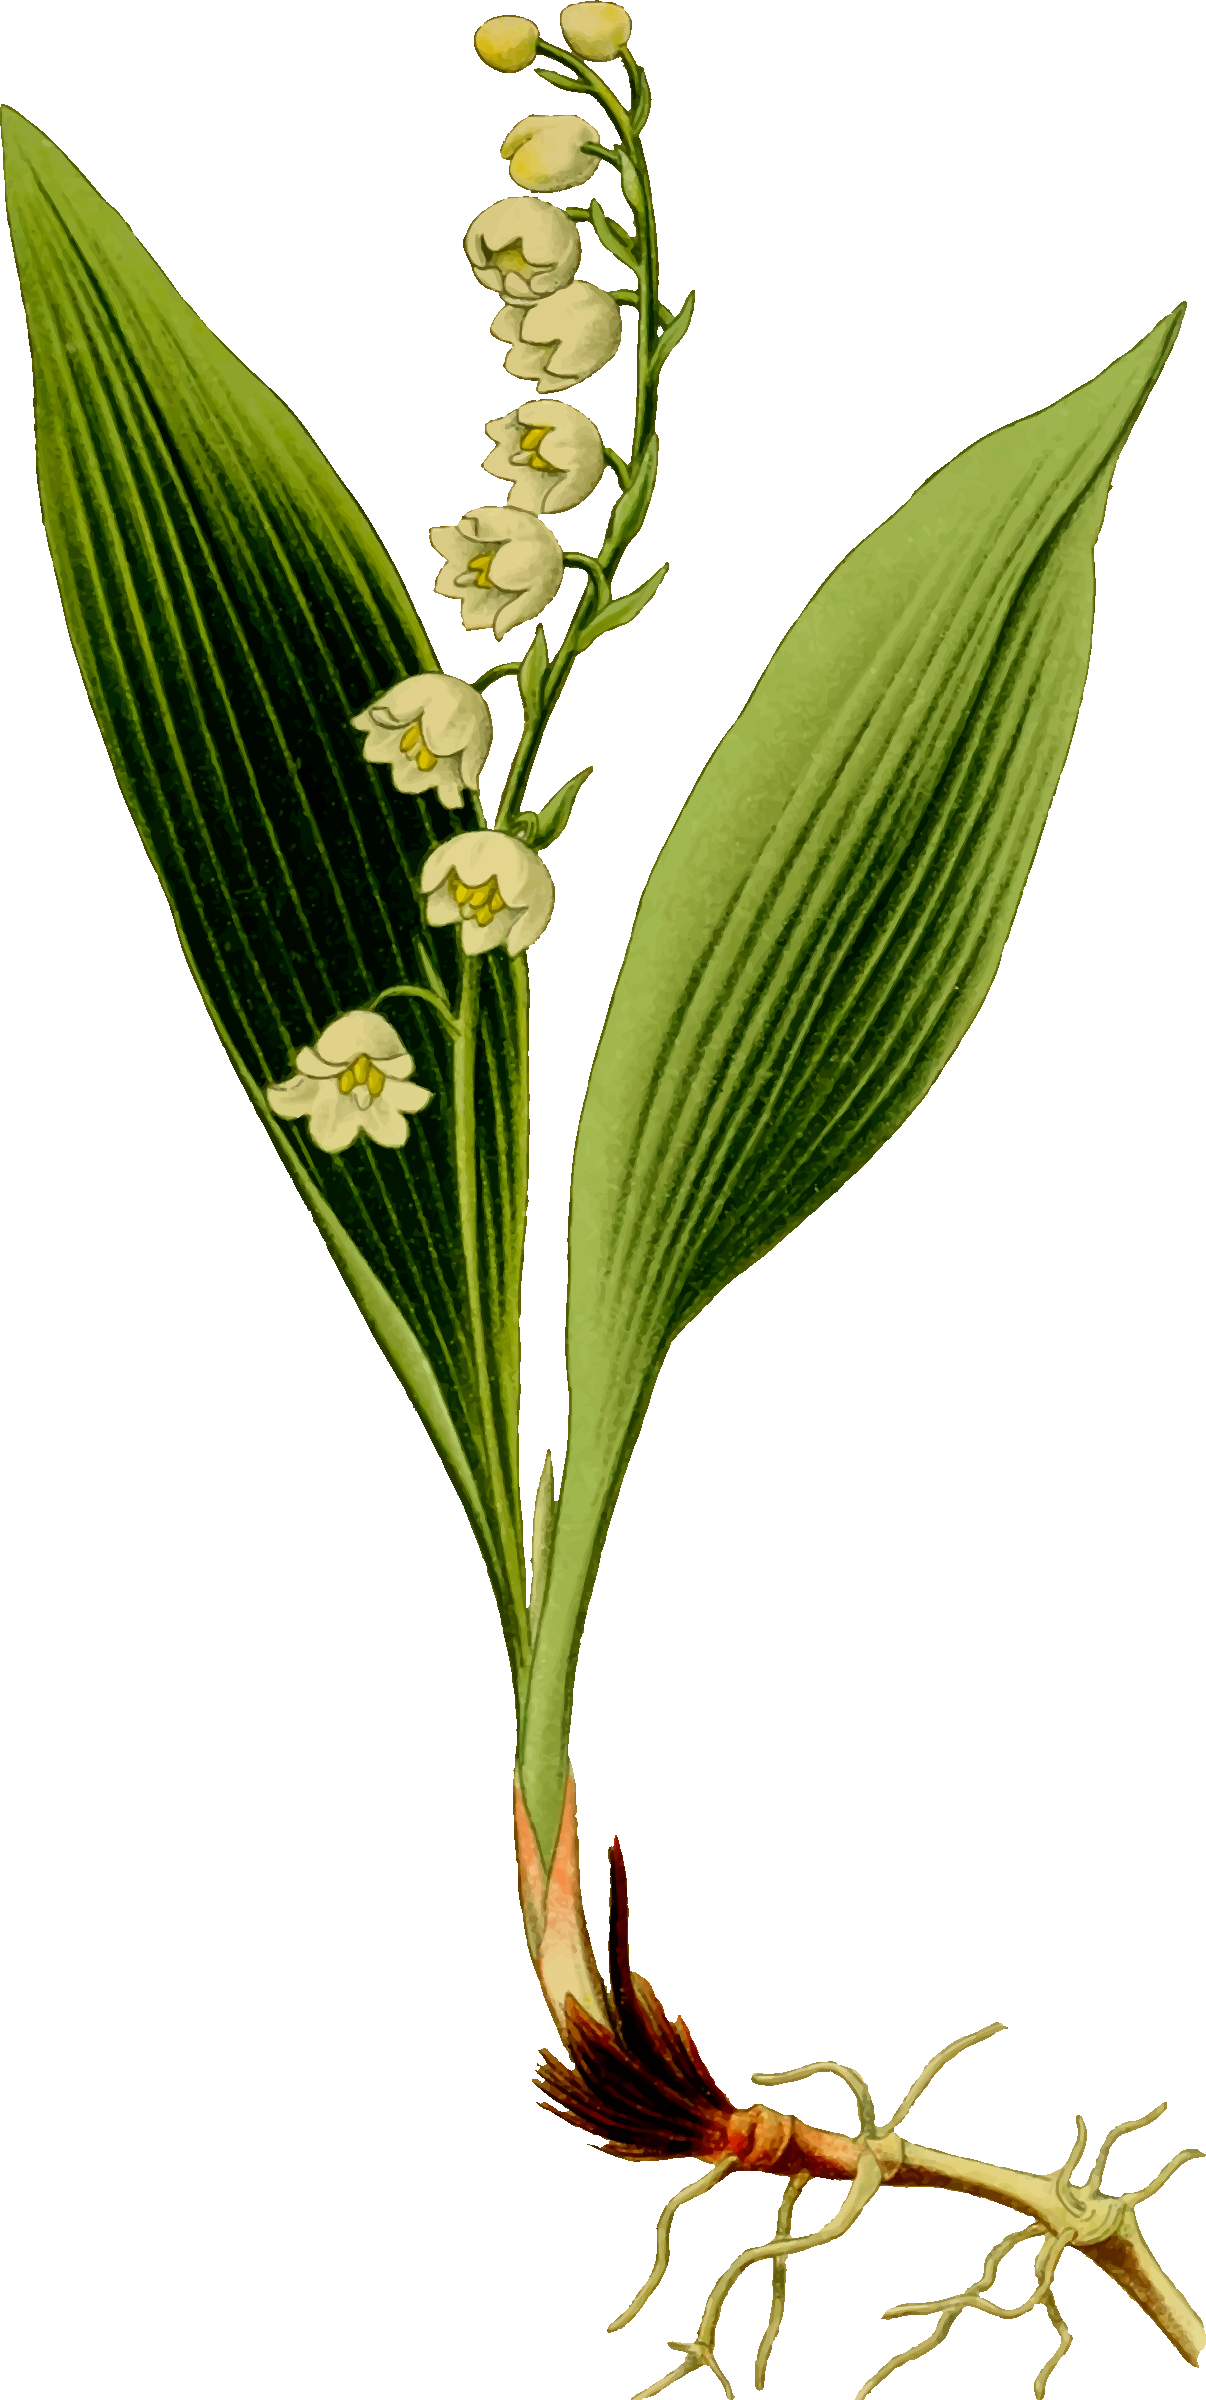 Lily of the valley by Firkin